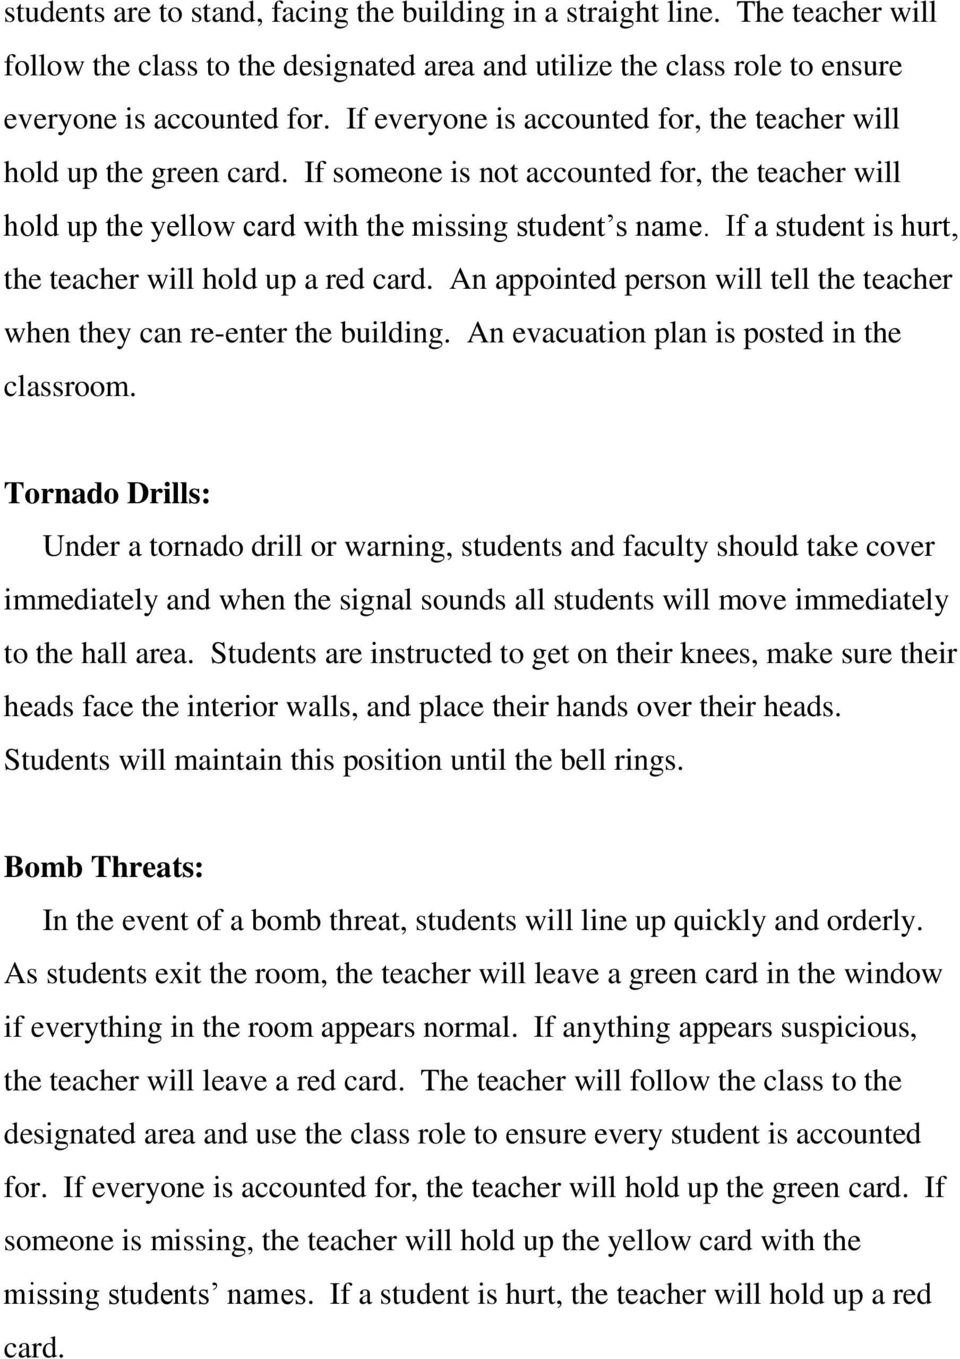 If a student is hurt, the teacher will hold up a red card. An appointed person will tell the teacher when they can re-enter the building. An evacuation plan is posted in the classroom.